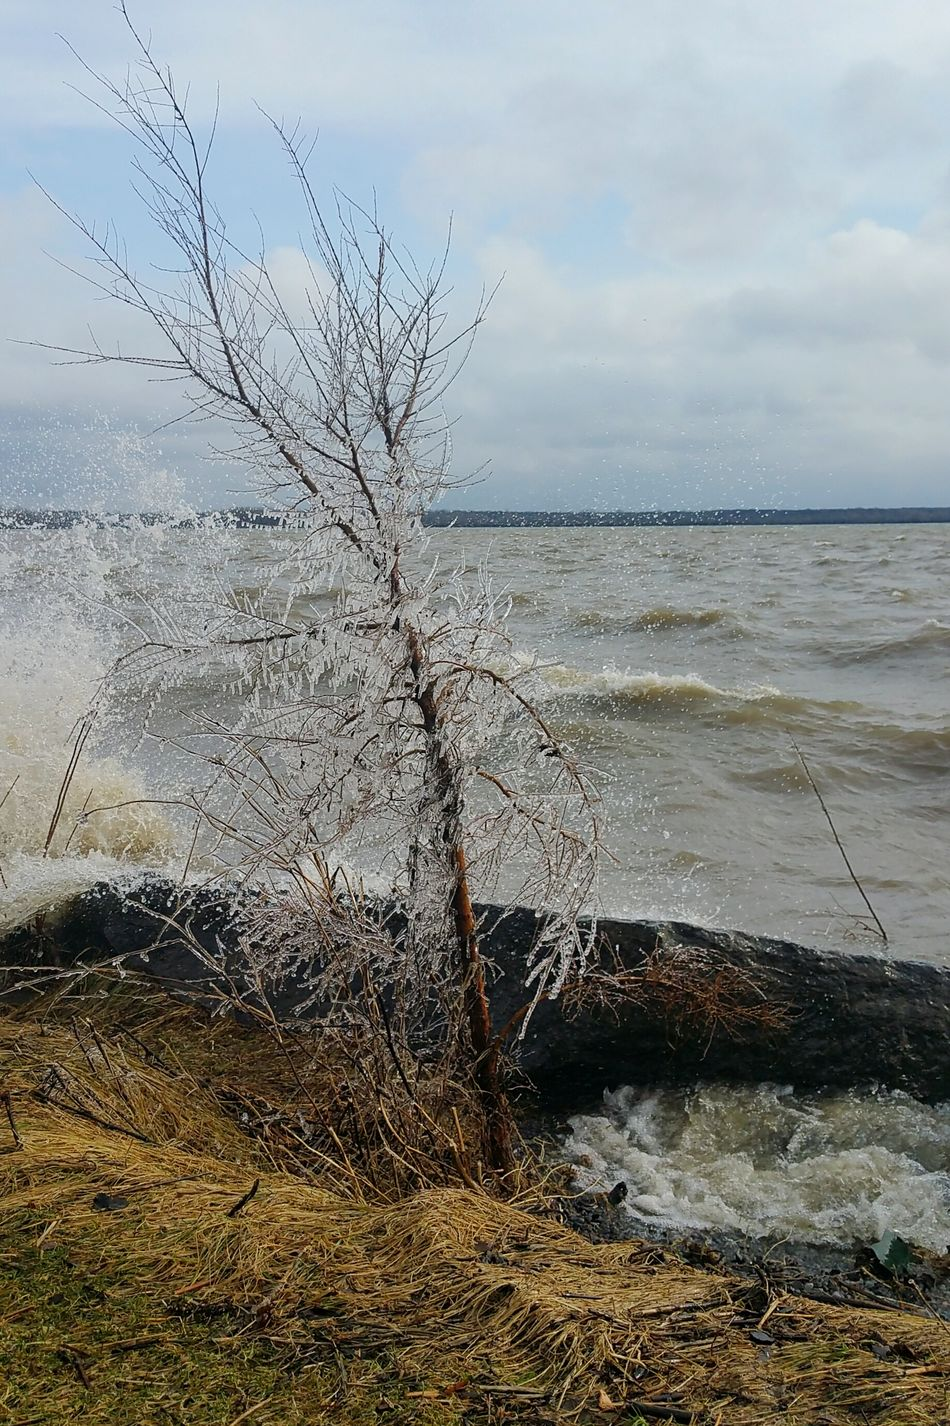 Springtime Windy Day Lakeshore Frozen Nature Lachine taken during windy day in lachine Showcase April